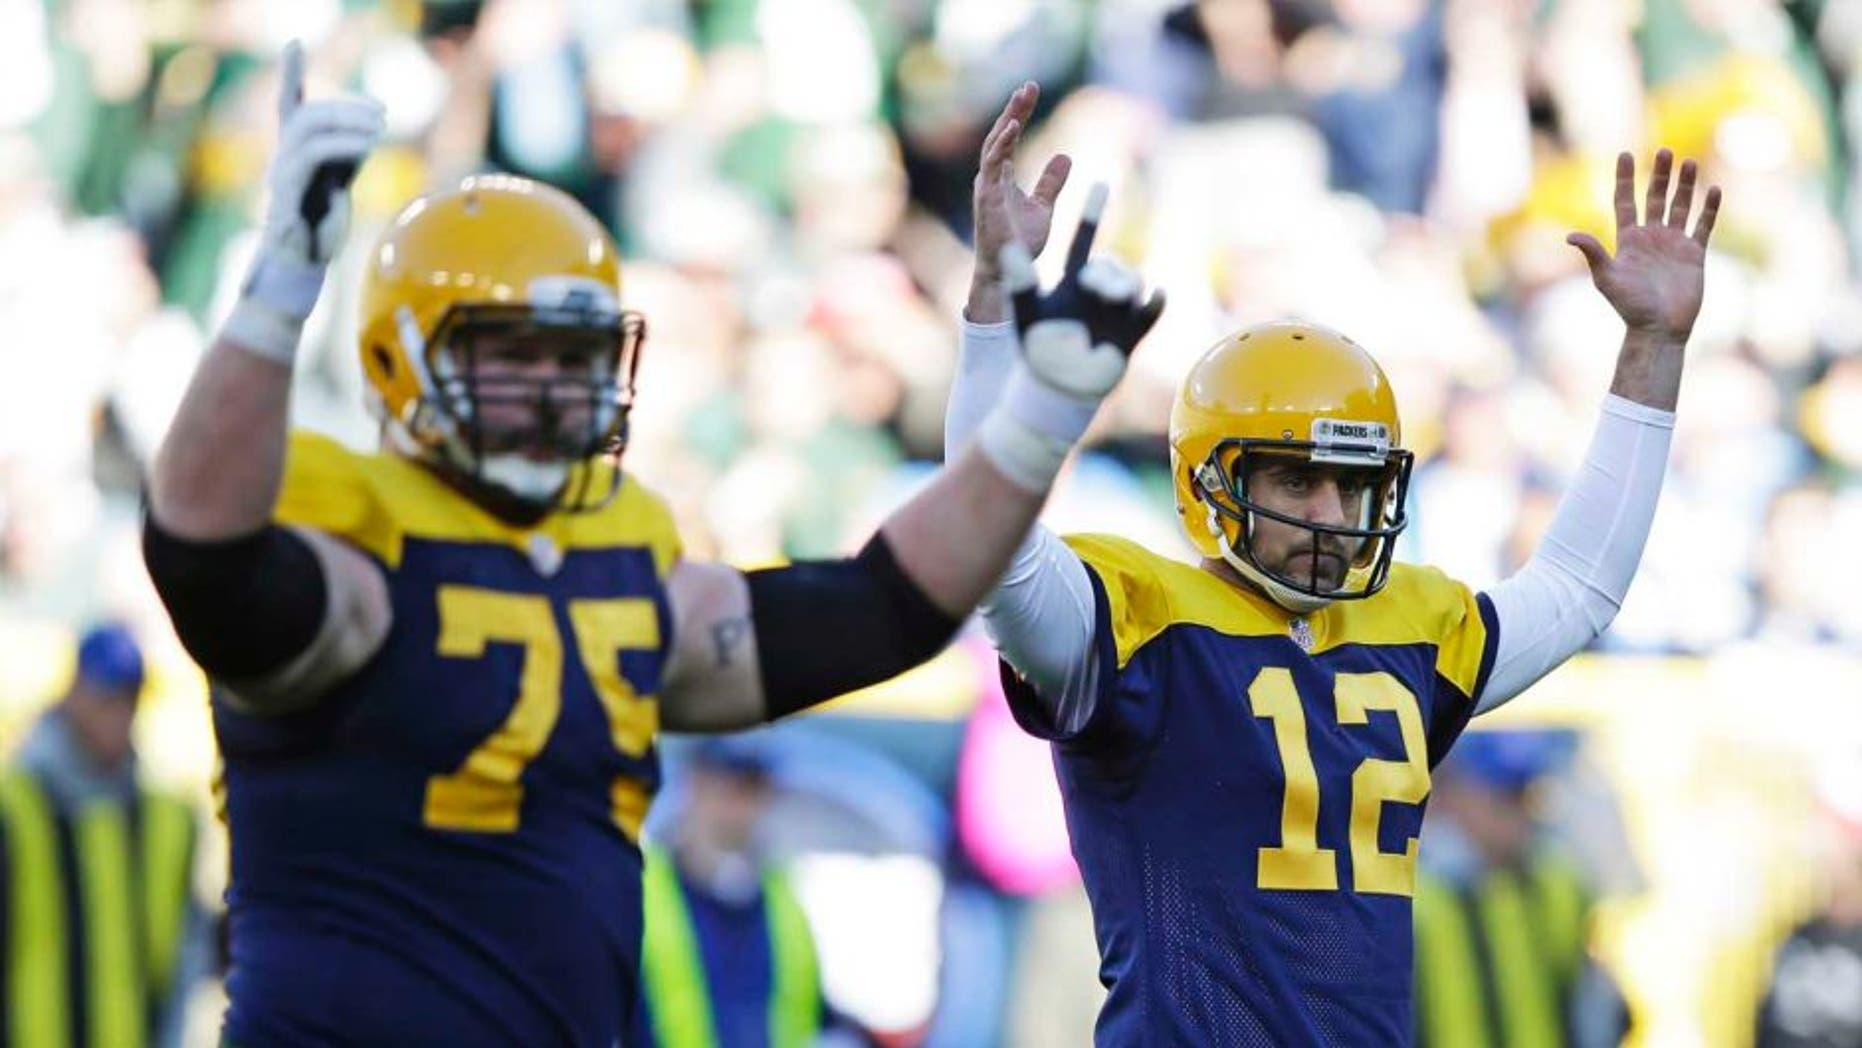 Green Bay Packers quarterback Aaron Rodgers (right) and Bryan Bulaga signal a touchdown after Rodgers threw a five-yard touchdown pass to James Starks during the first half against the San Diego Chargers on Sunday, Oct. 18, 2015, in Green Bay, Wis.